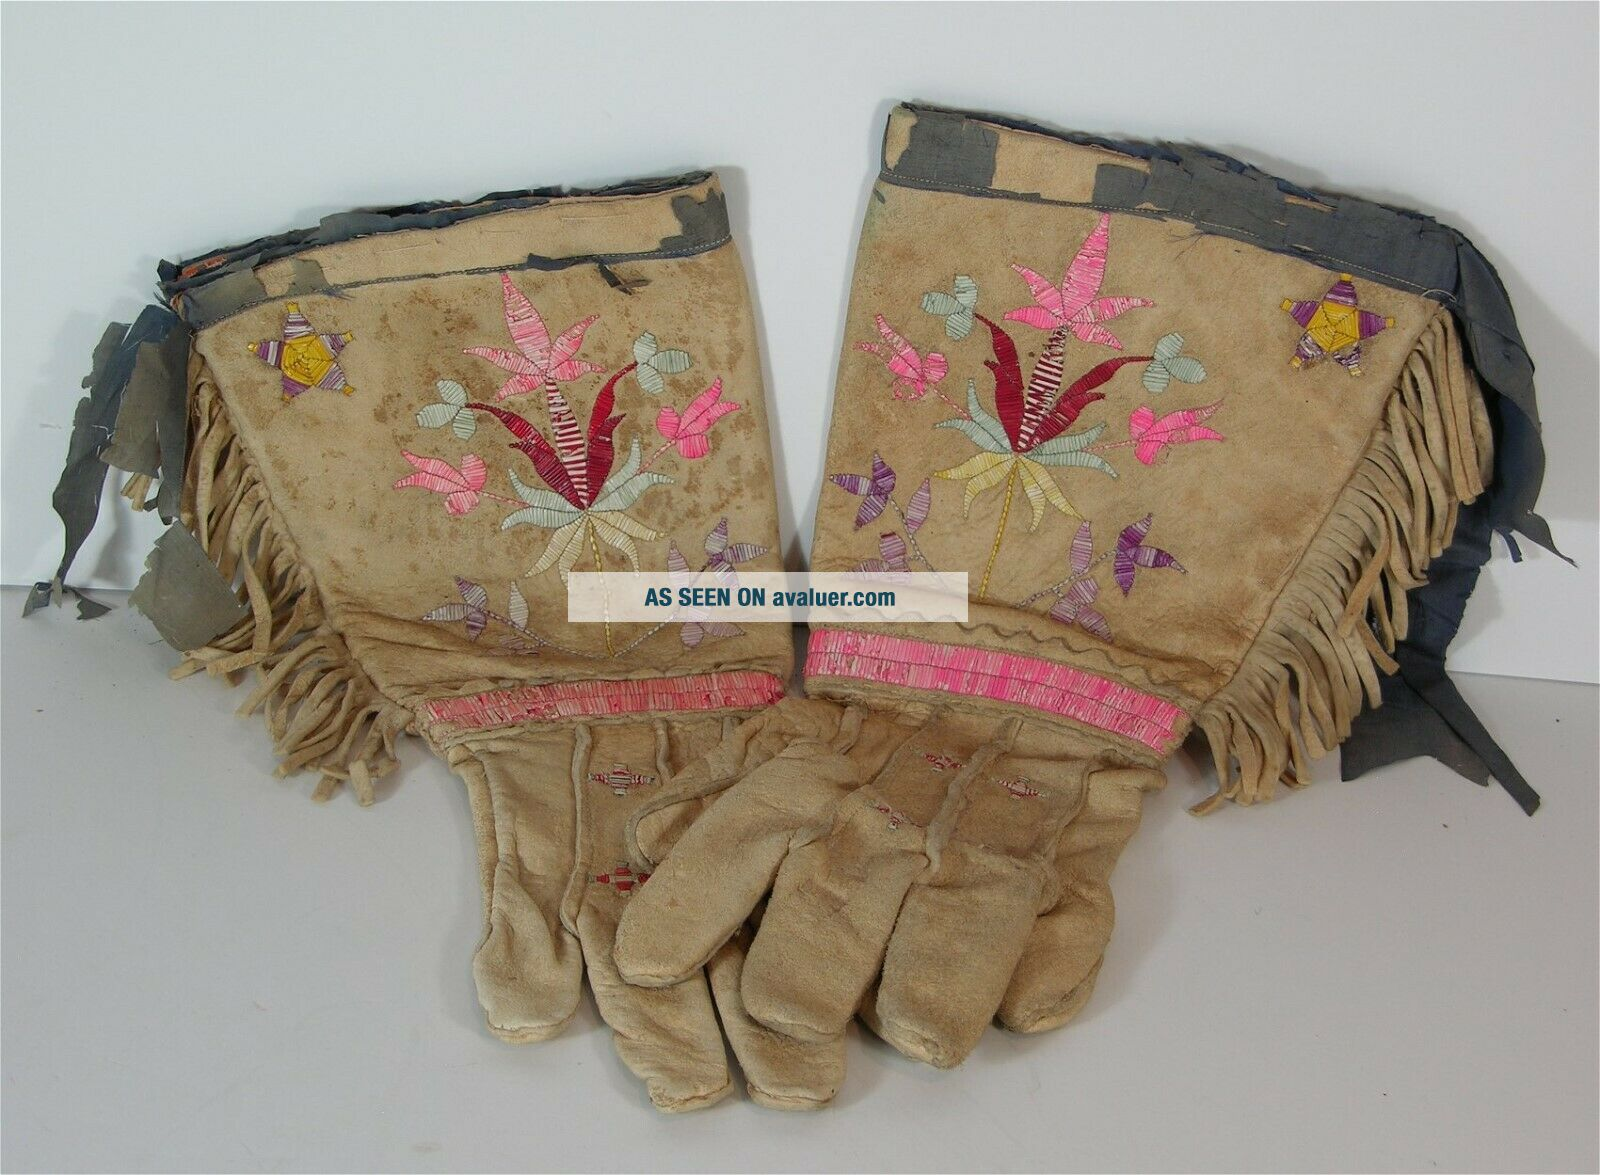 c1880s PAIR NATIVE AMERICAN SIOUX INDIAN QUILL DECORATED HIDE GAUNTLETS / GLOVES